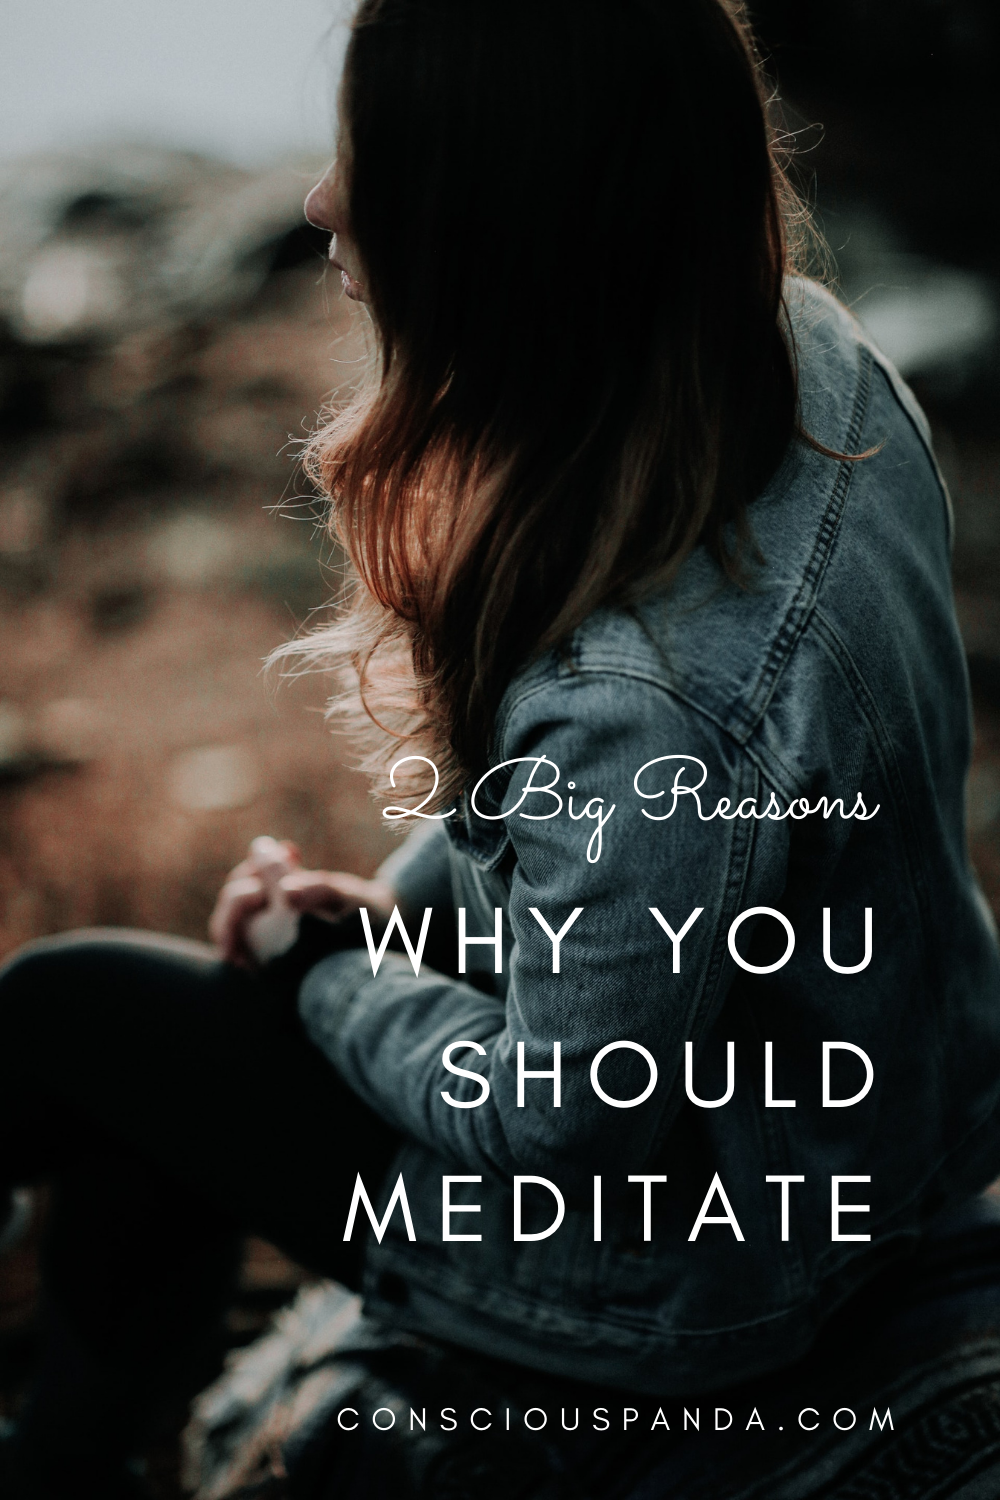 2 big reasons why you should meditate